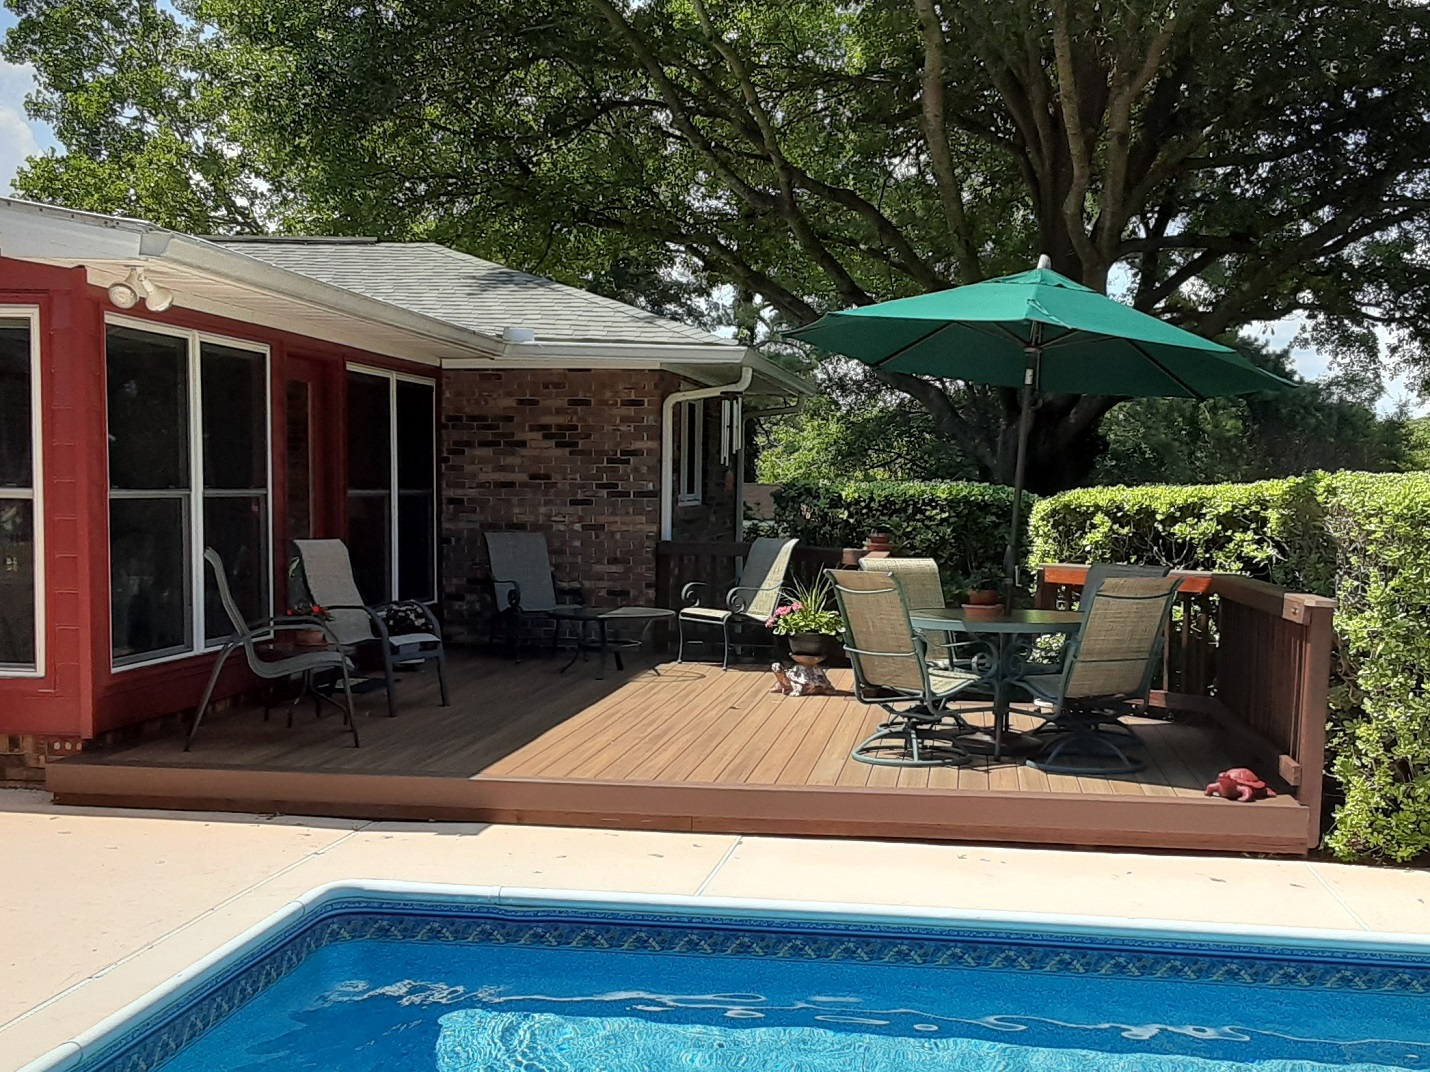 Fiberon-poolside-deck-in-Warner-Robins-GA